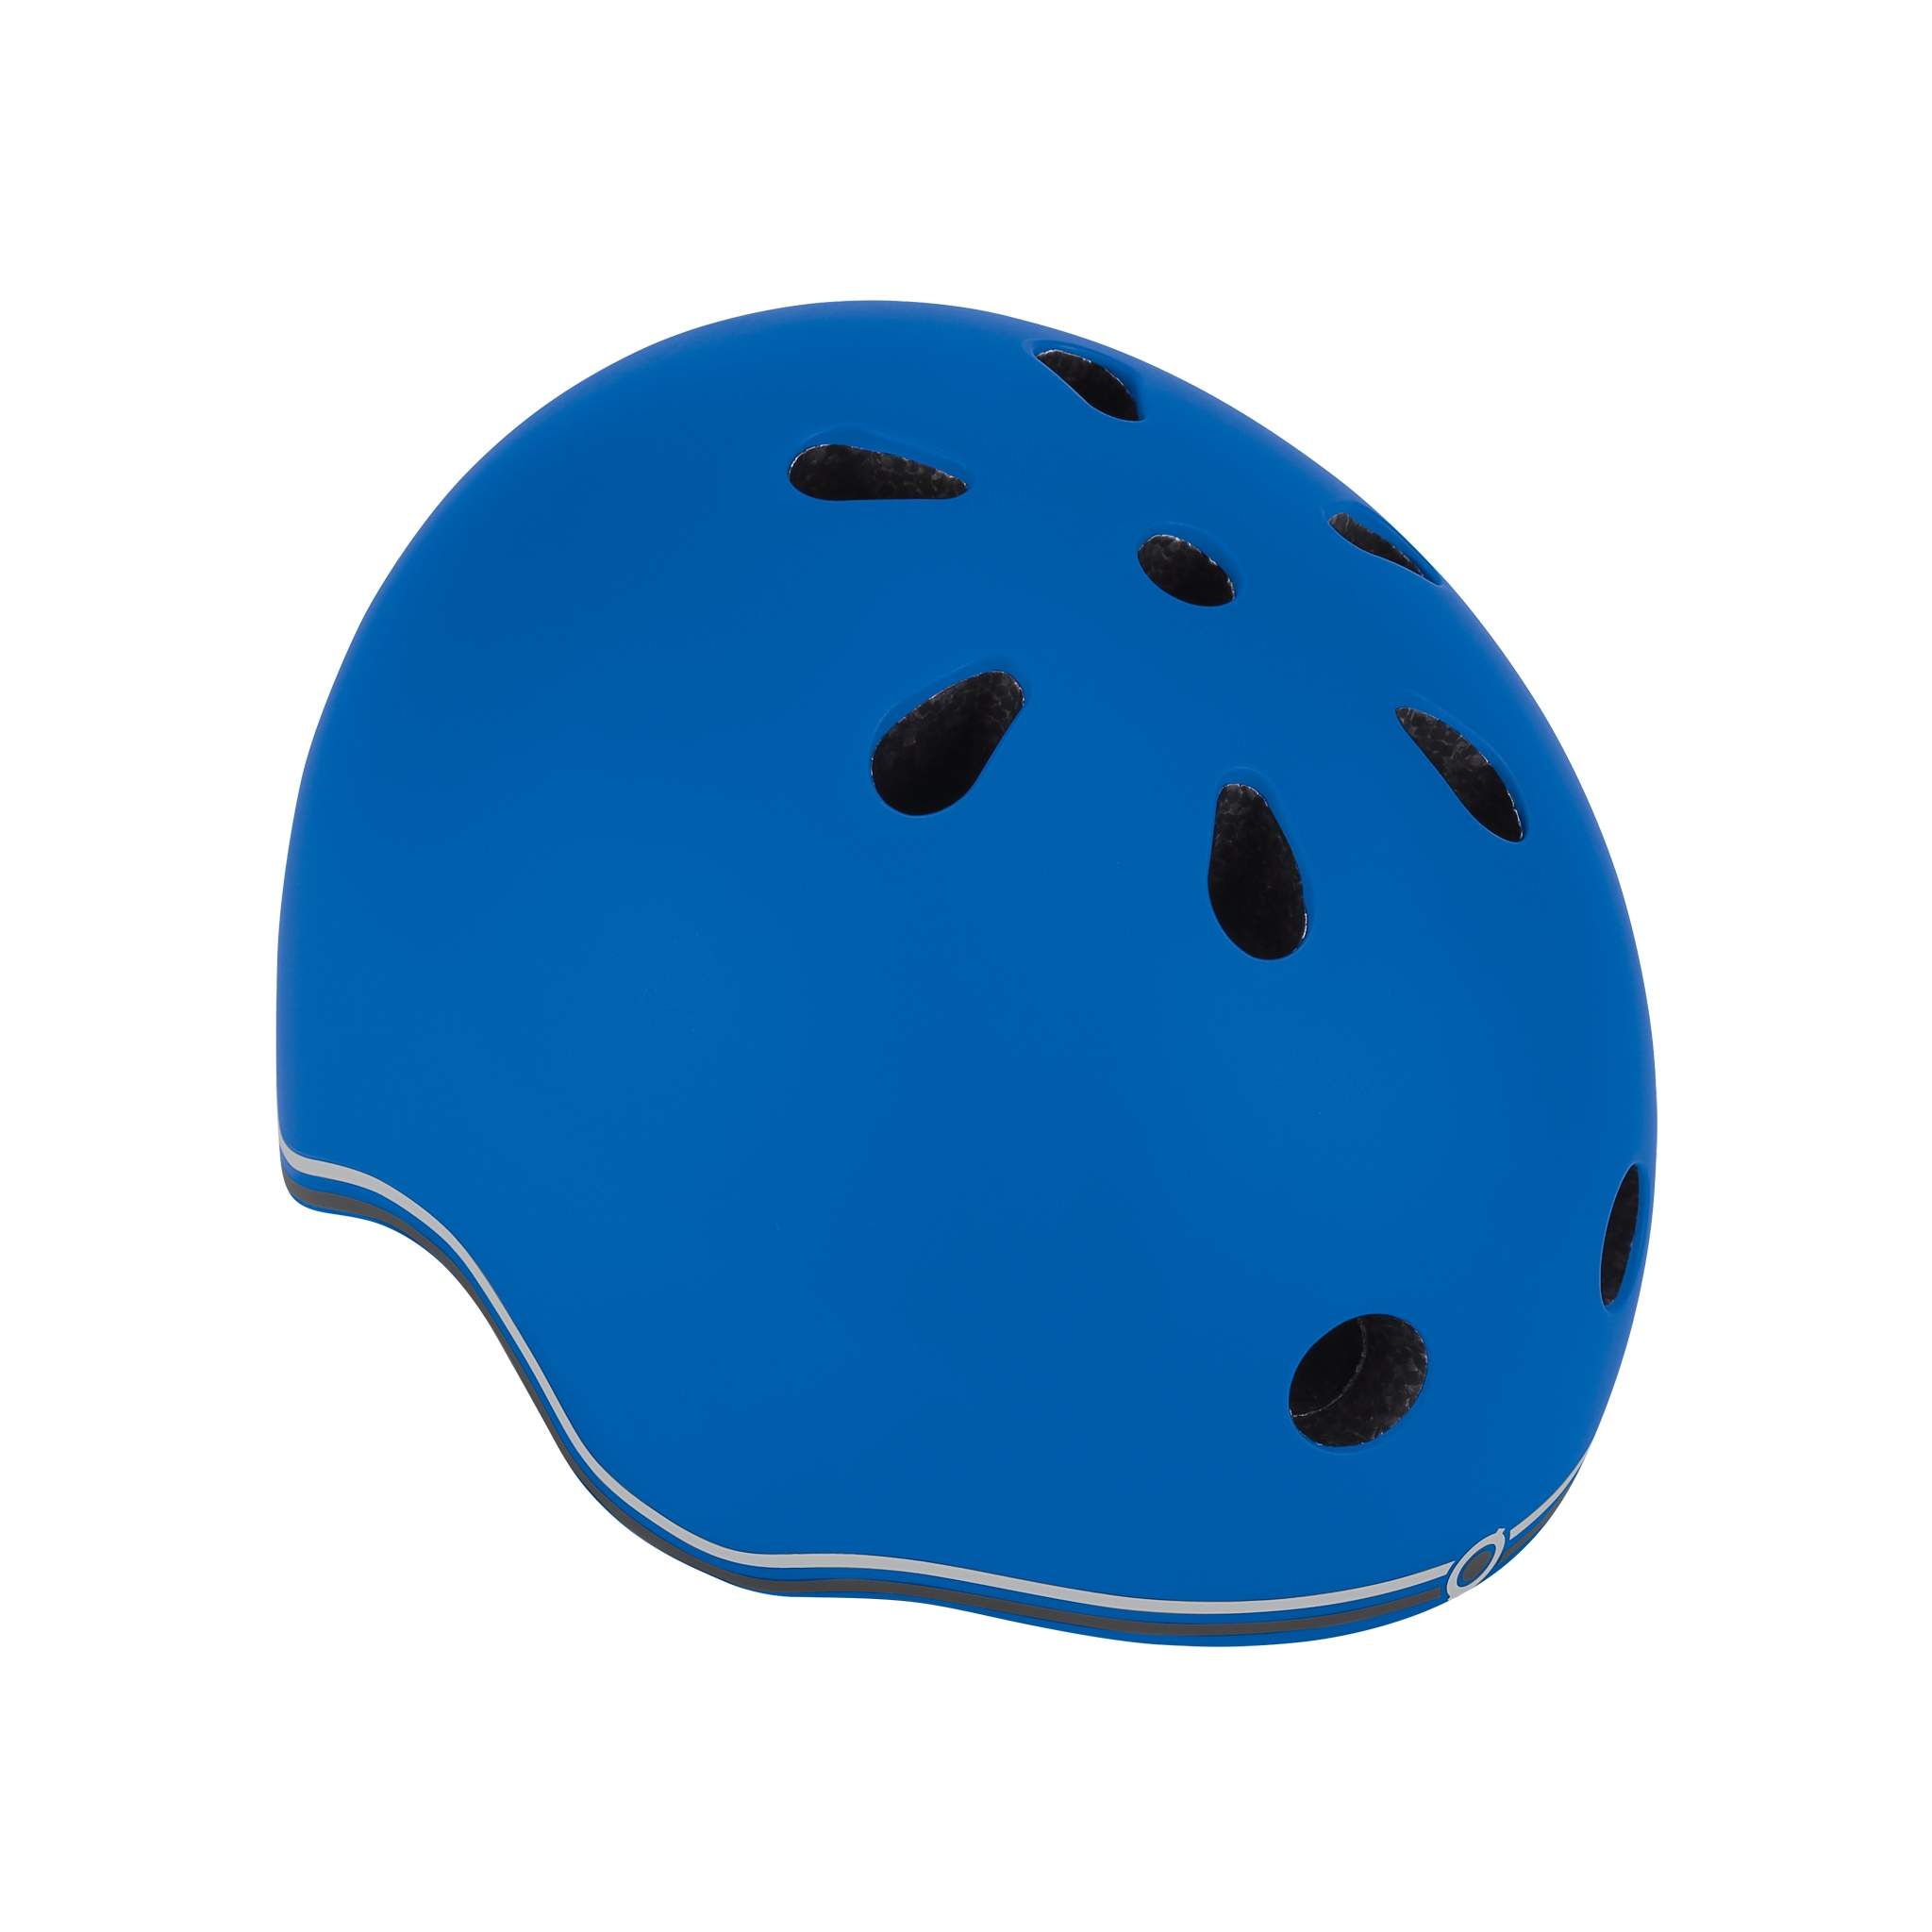 EVO-helmets-scooter-helmets-for-toddlers-in-mold-polycarbonate-outer-shell-navy-blue 0